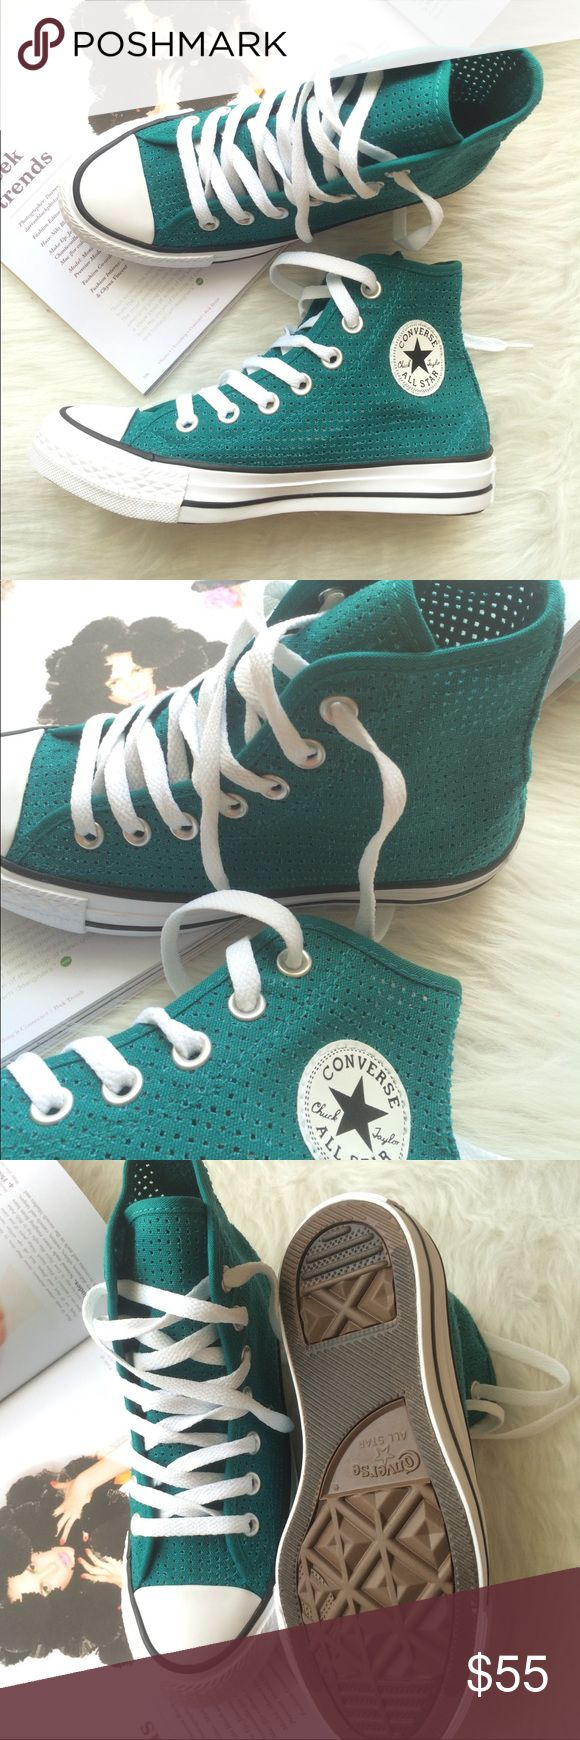 1 HOUR SALE! Converse all star Women's teal shoe Converse all star women's. Brand new without box. ✨Price is firm. Ships same day or very next. Runs true to size. Converse Shoes Sneakers